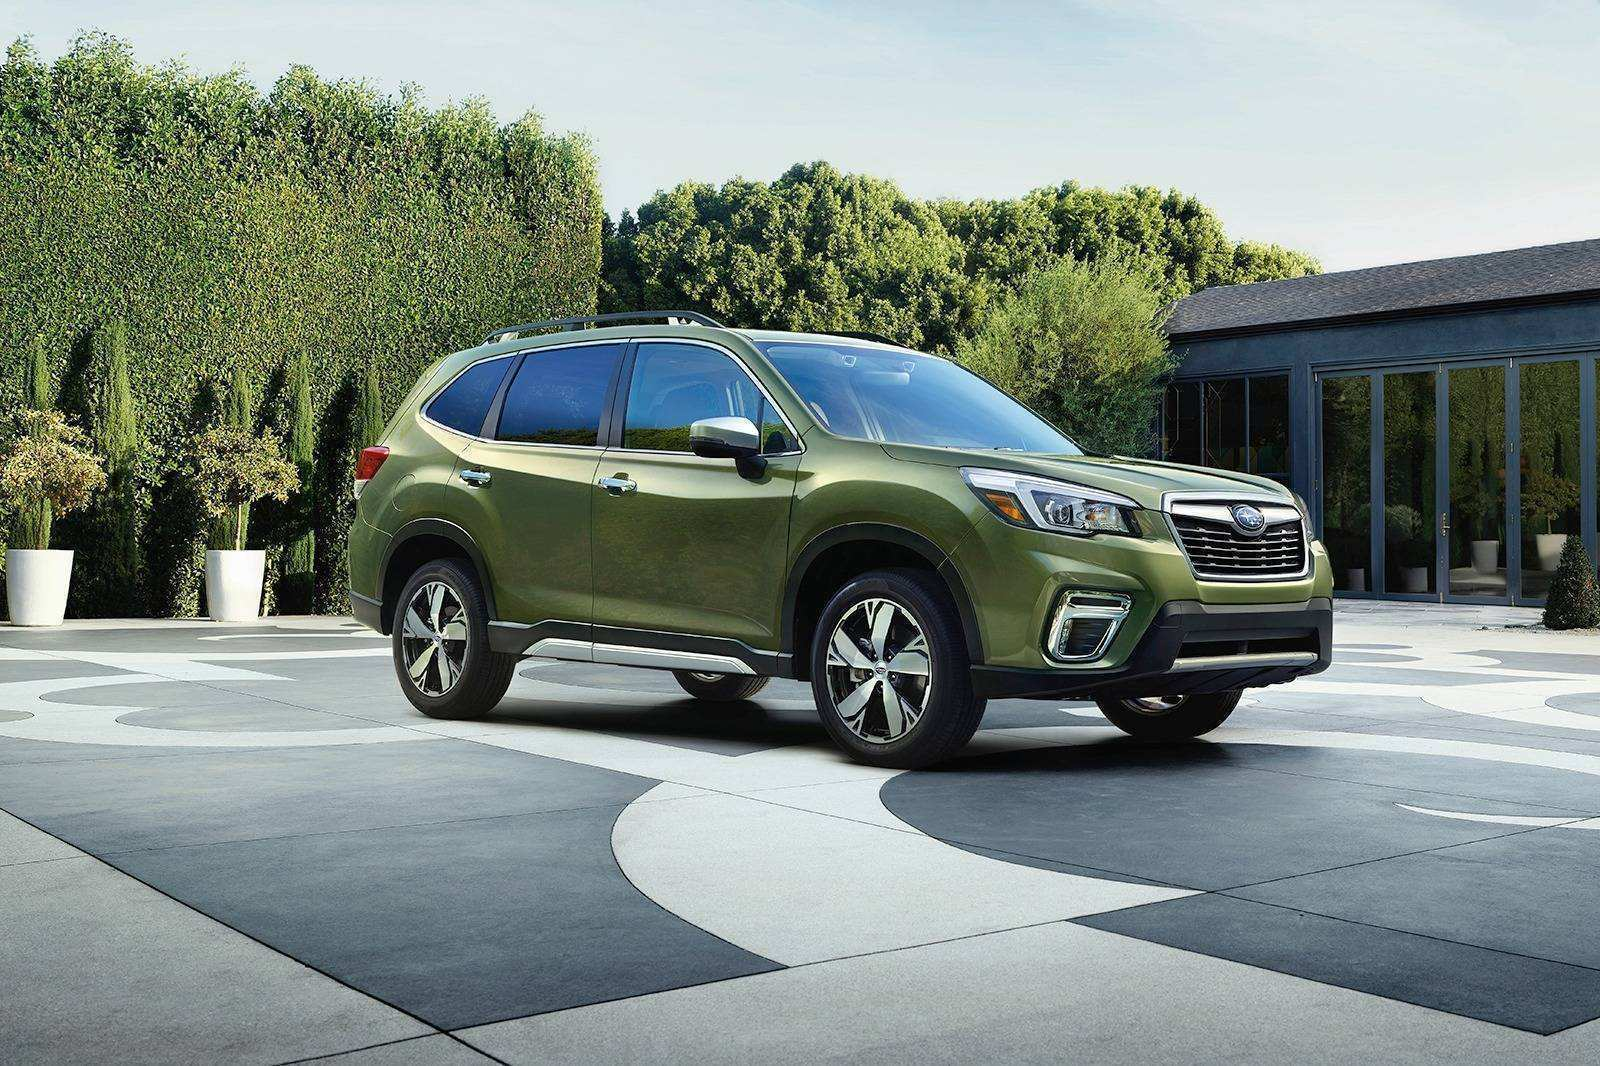 51 All New 2019 Subaru Forester Exterior And Interior